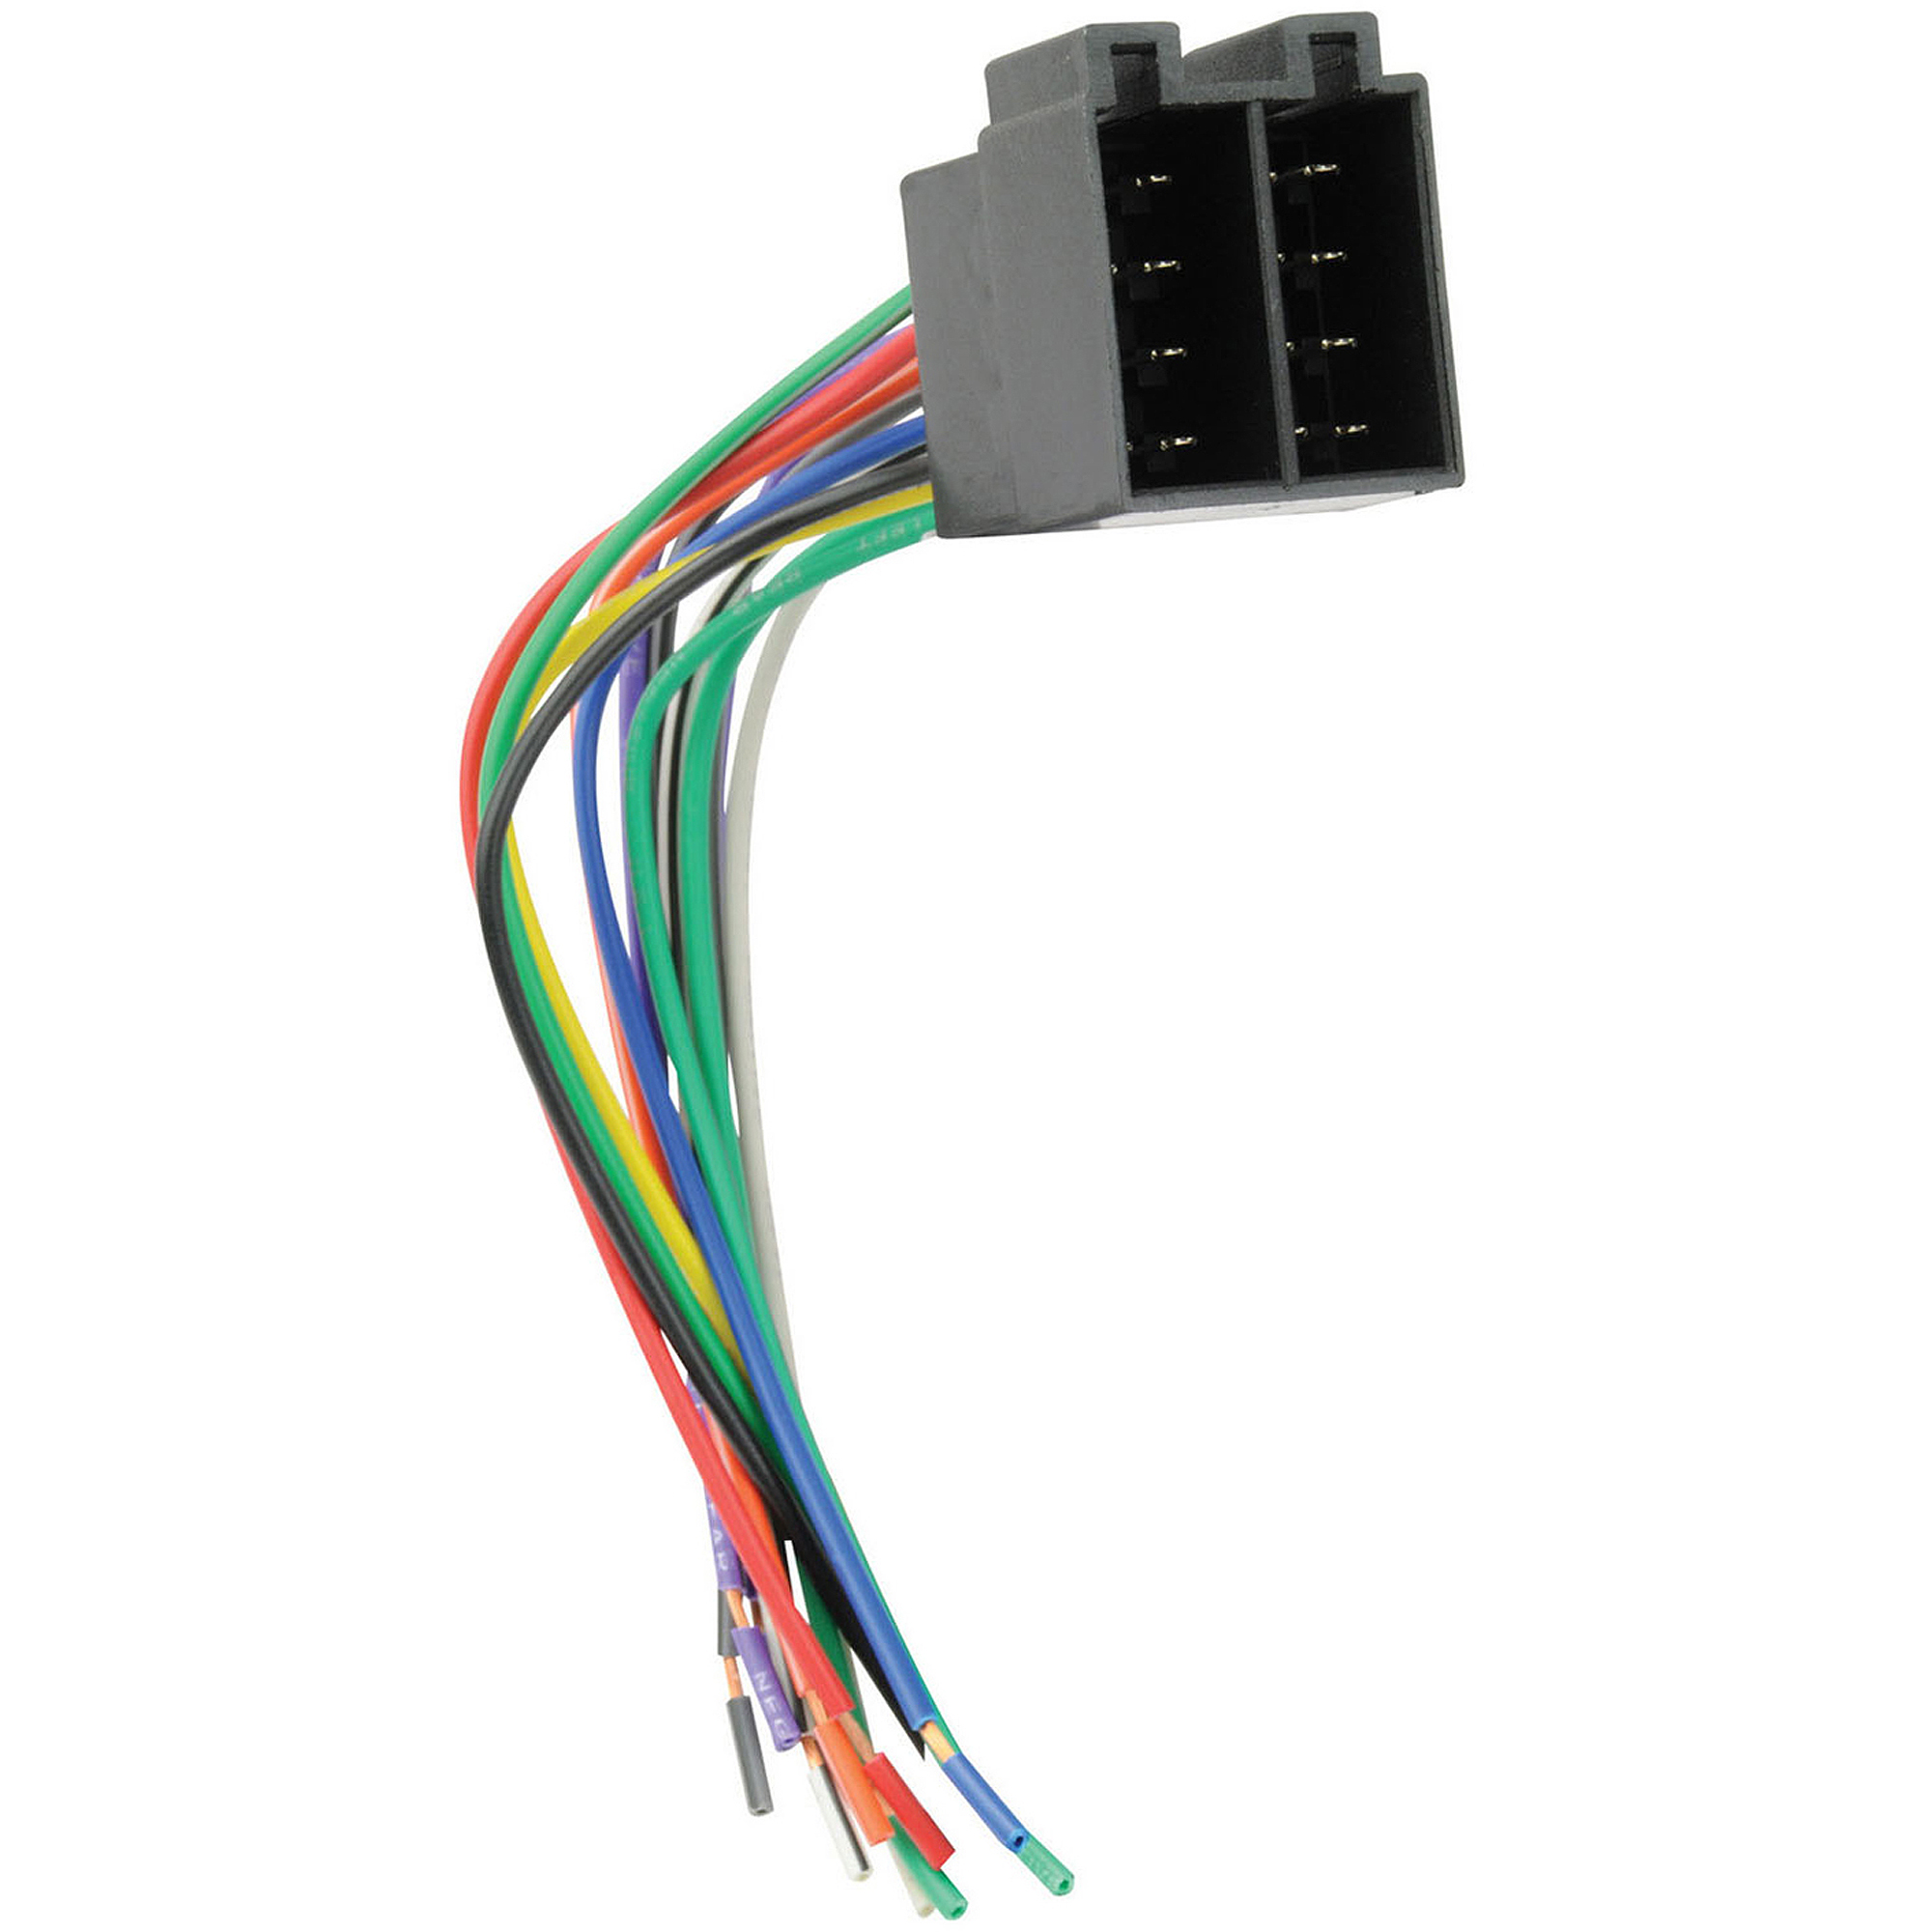 hight resolution of scosche hy11b 2008 and up hyundai premium sound wire harness connector for car radio stereo installation black walmart com